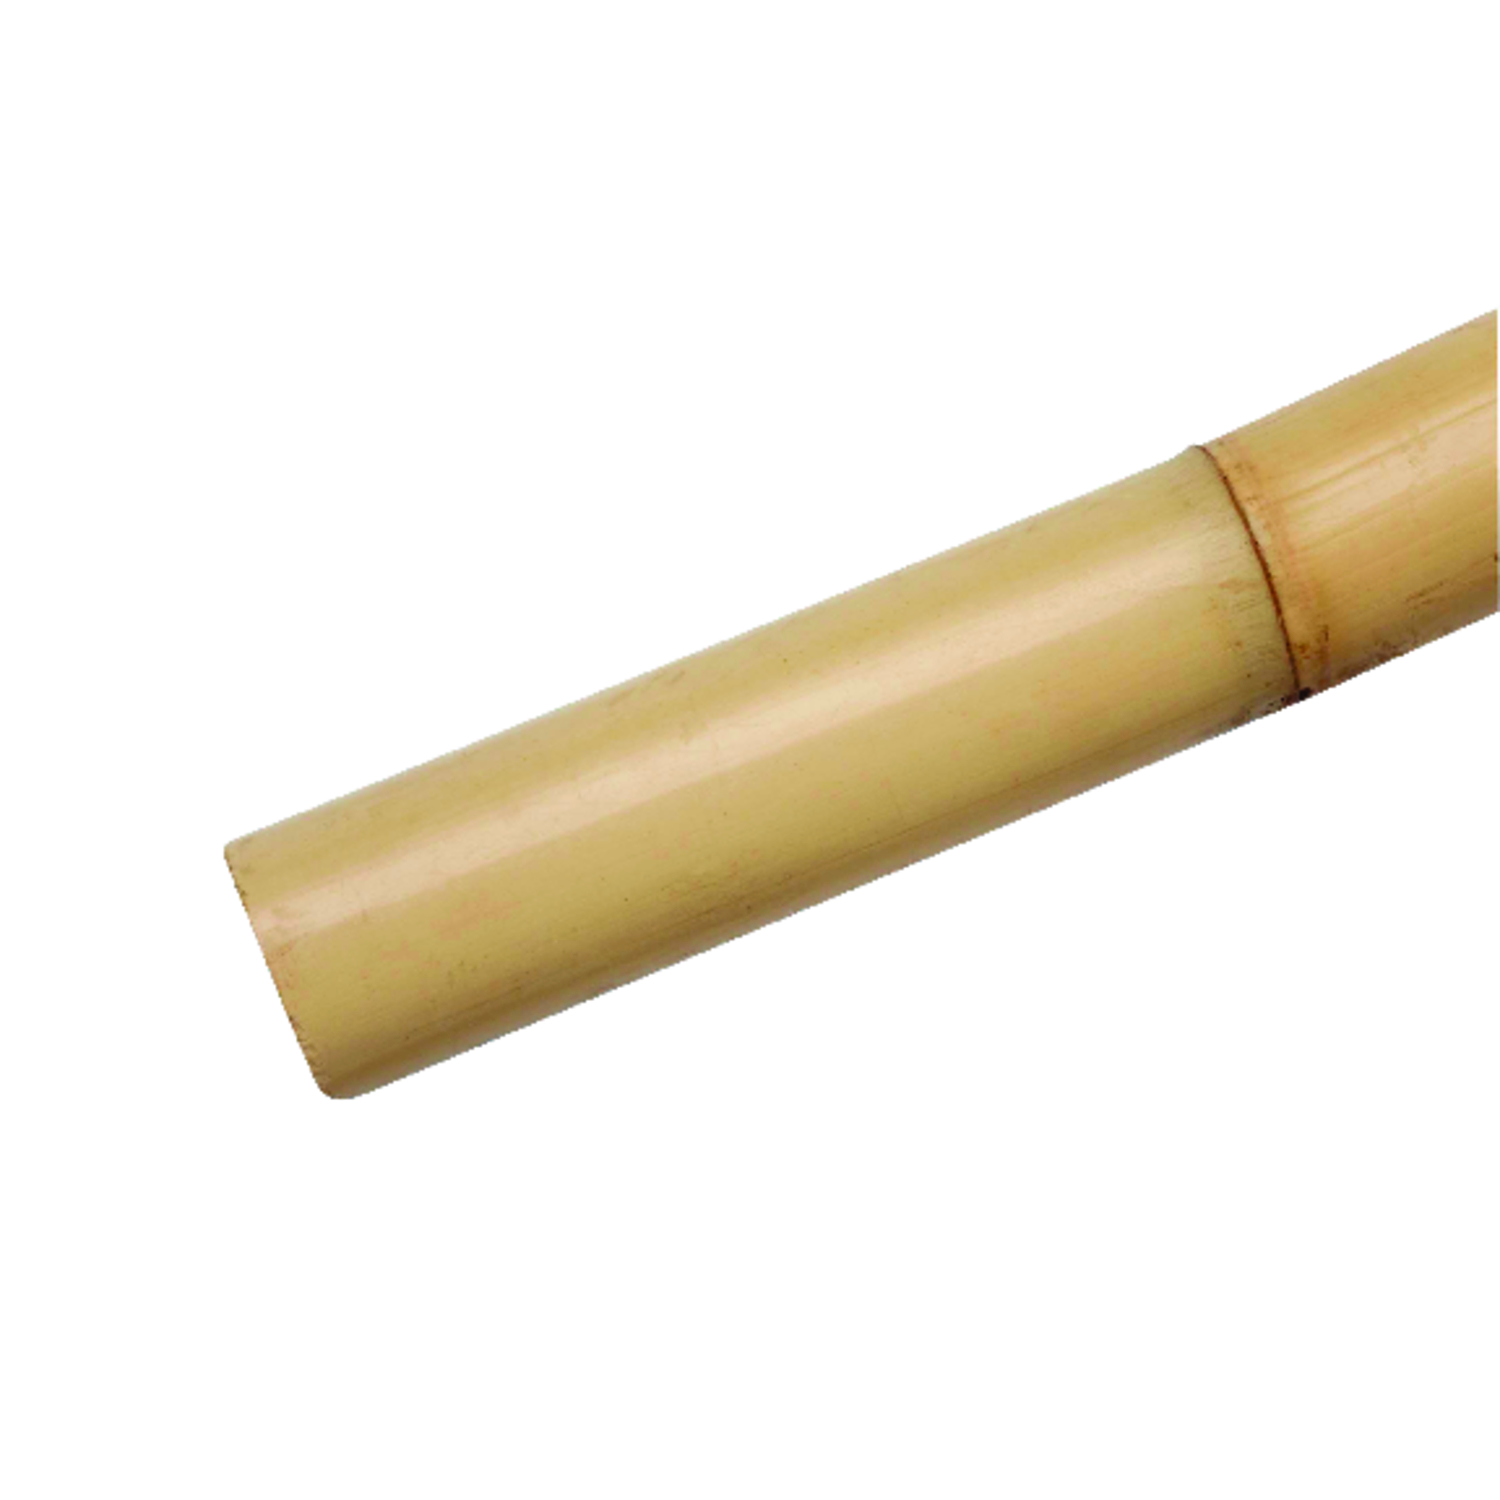 Waddell  1-3/4 in. W x 8 ft. L x 1-1/2 in.  Pole  Bamboo